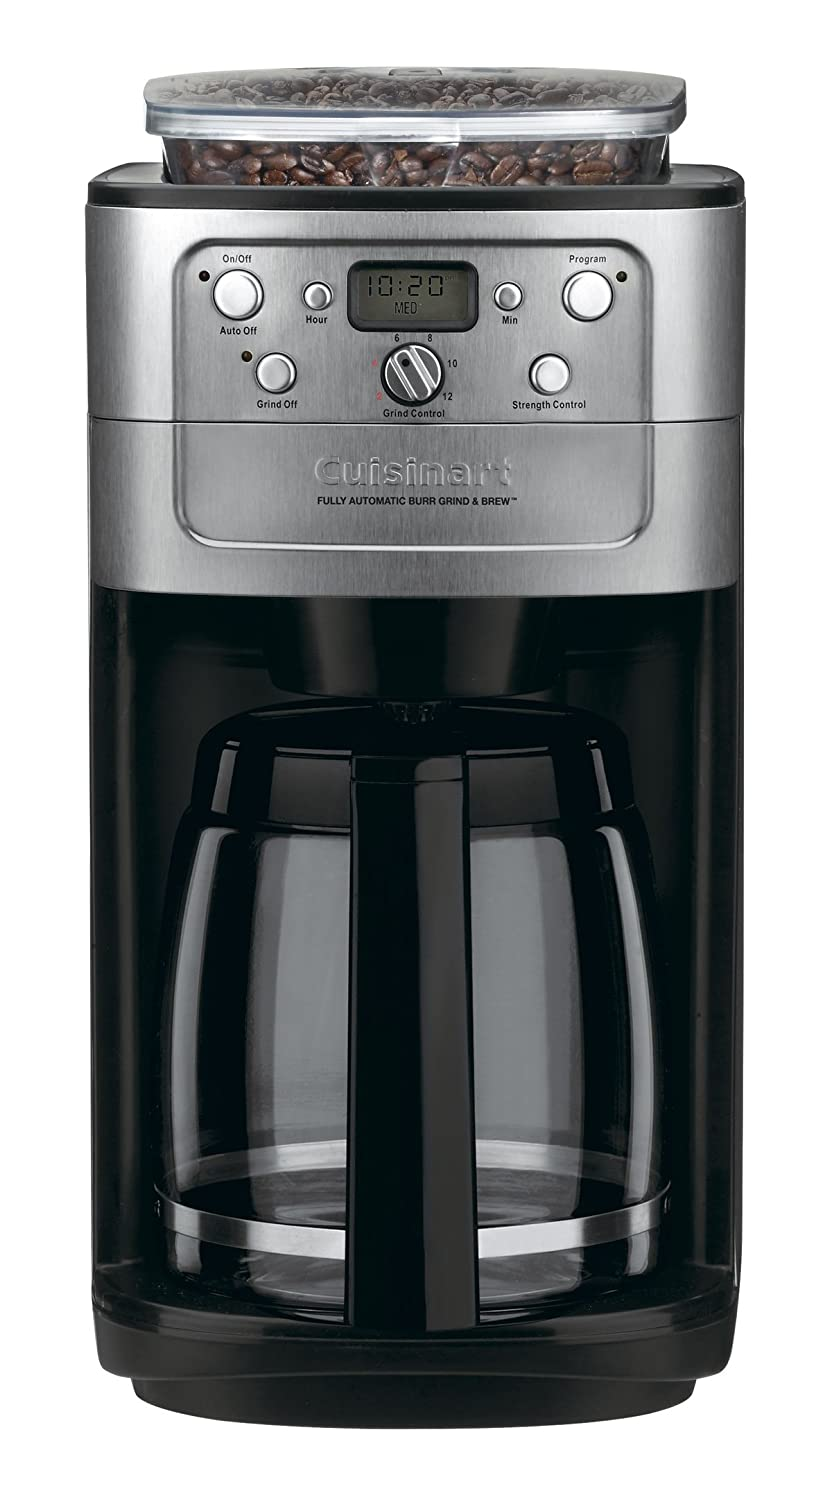 Cuisinart DGB-700BC Grind-and-Brew 12-Cup Automatic Coffeemaker, Brushed Chrome/Black Review